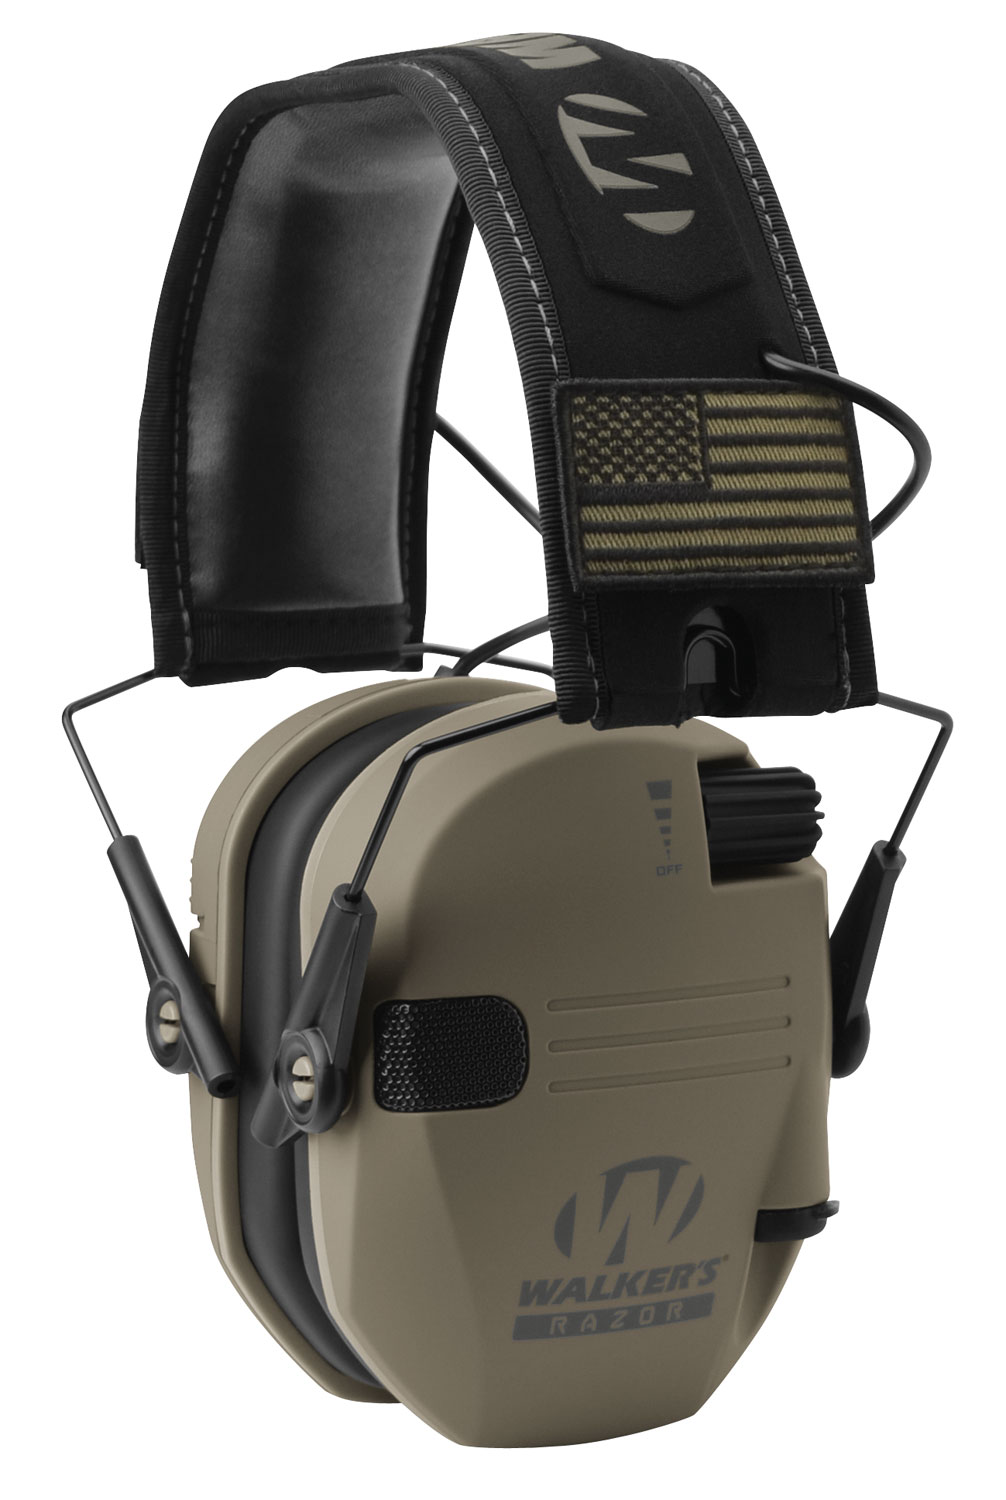 WALKERS MUFF ELECTRONIC RAZOR SLIM PATRIOT 23dB FDE